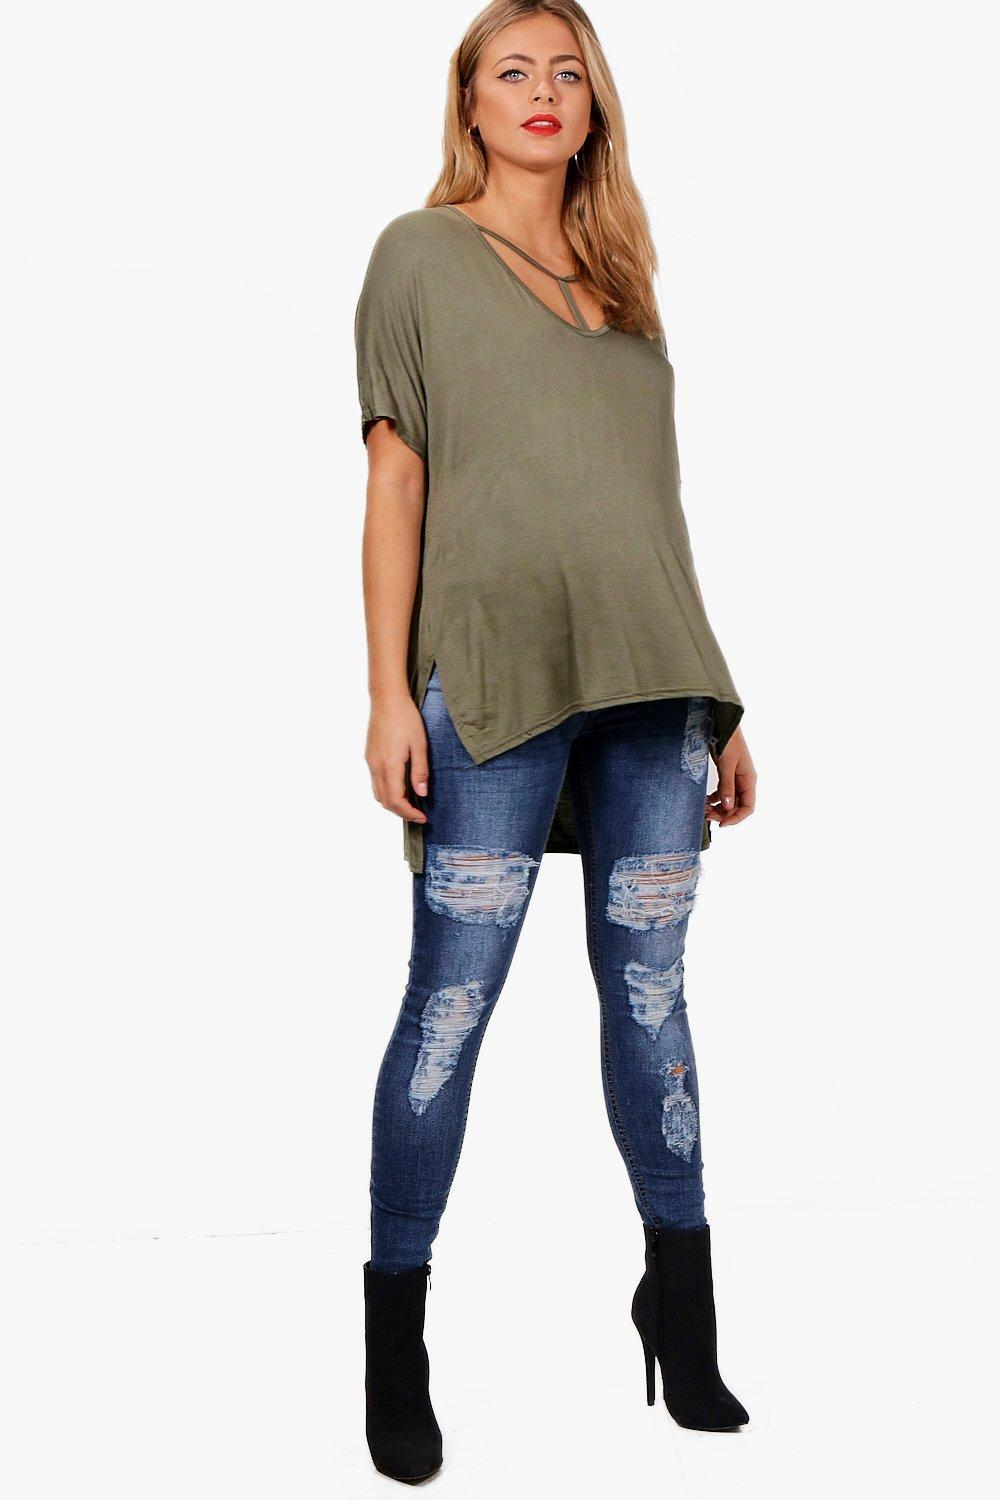 e096ae643eaab Lyst - Boohoo Maternity Over The Bump Ripped Skinny Jeans in Blue